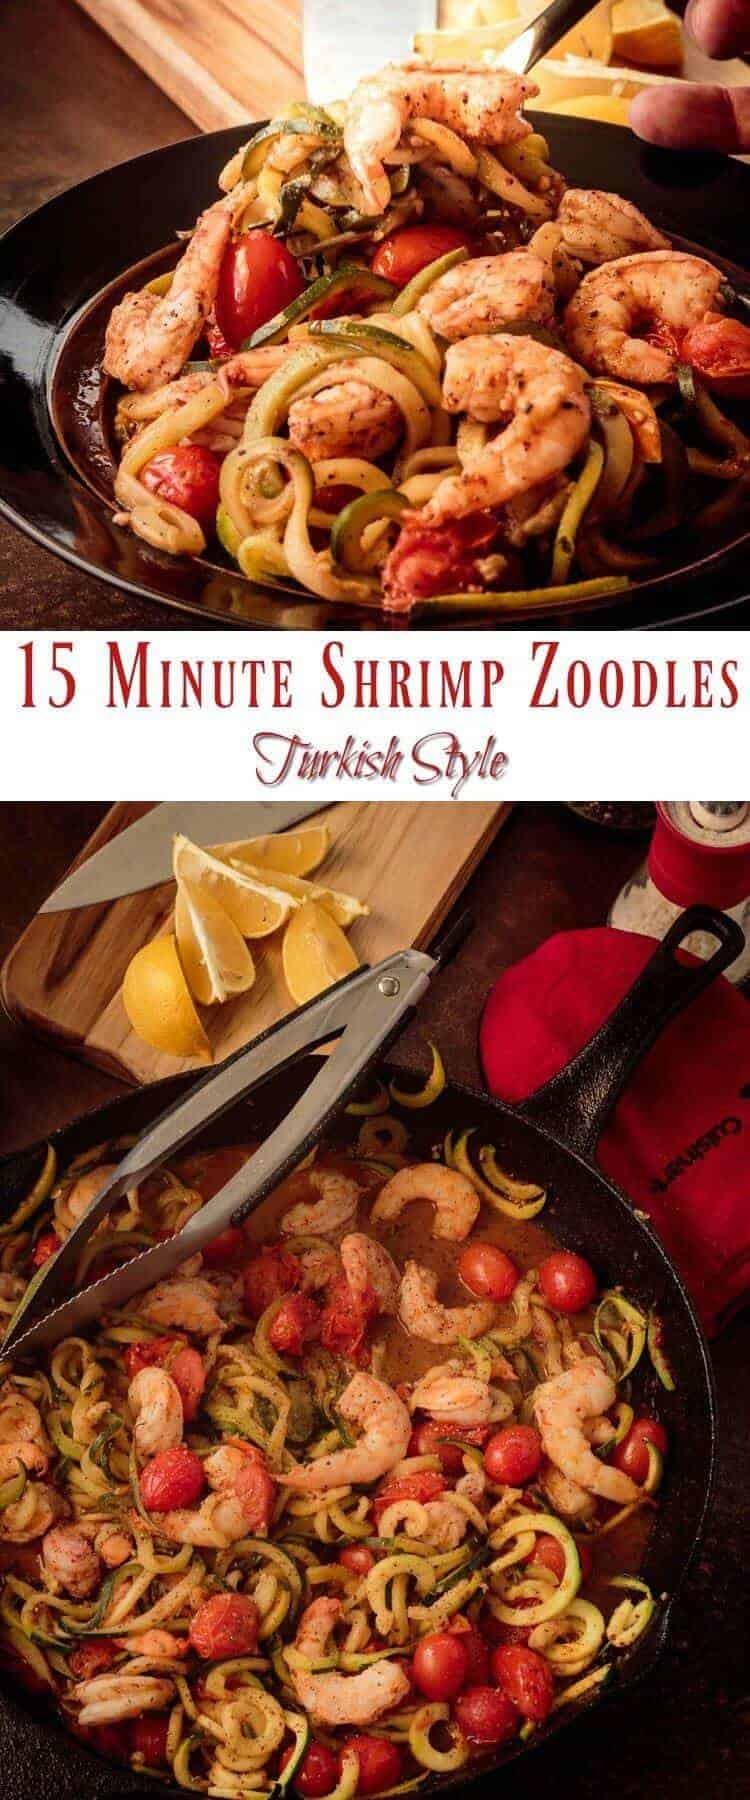 15 Minute Shrimp Zoodles Turkish Style Pin - Earthy aleppo pepper and sumac bring Turkish flavor notes to this healthy and lightening fast dish. 15 Minute Shrimp Zoodles Turkish Style is a perfect weeknight dinner with an exotic twist! #shrimpzoodles #spiralizerrecipes #zoodles #lowcarb #glutenfree #paleo #healthyweeknightdinner #Turkishcooking #aleppopepper